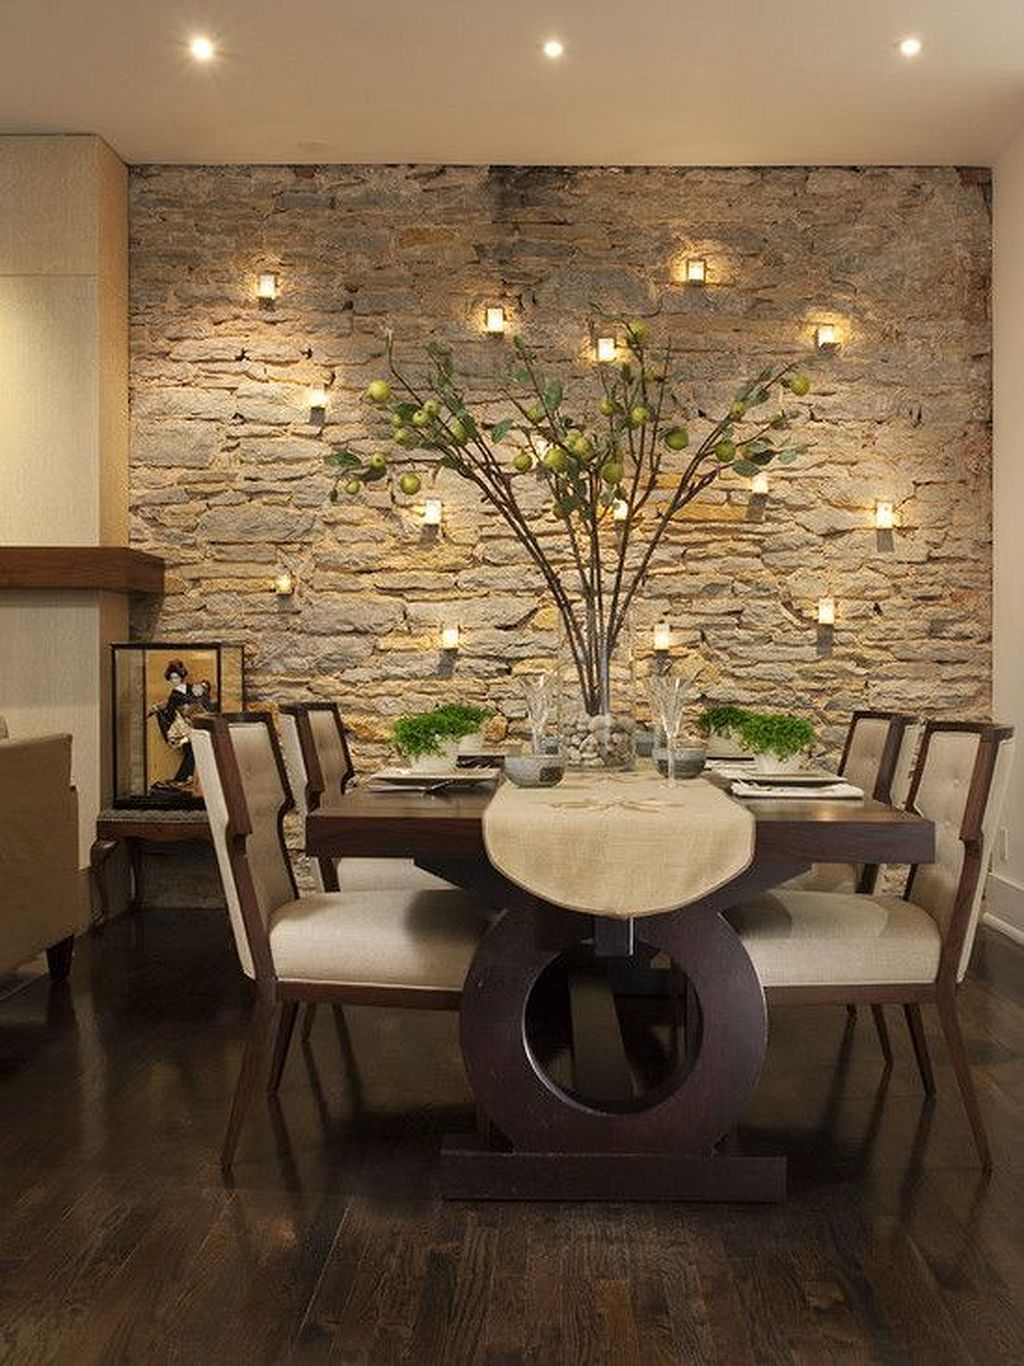 100 Modern Dining Room Design Ideas  Dining Room Design Magnificent Wall Decoration Ideas For Dining Room Decorating Inspiration